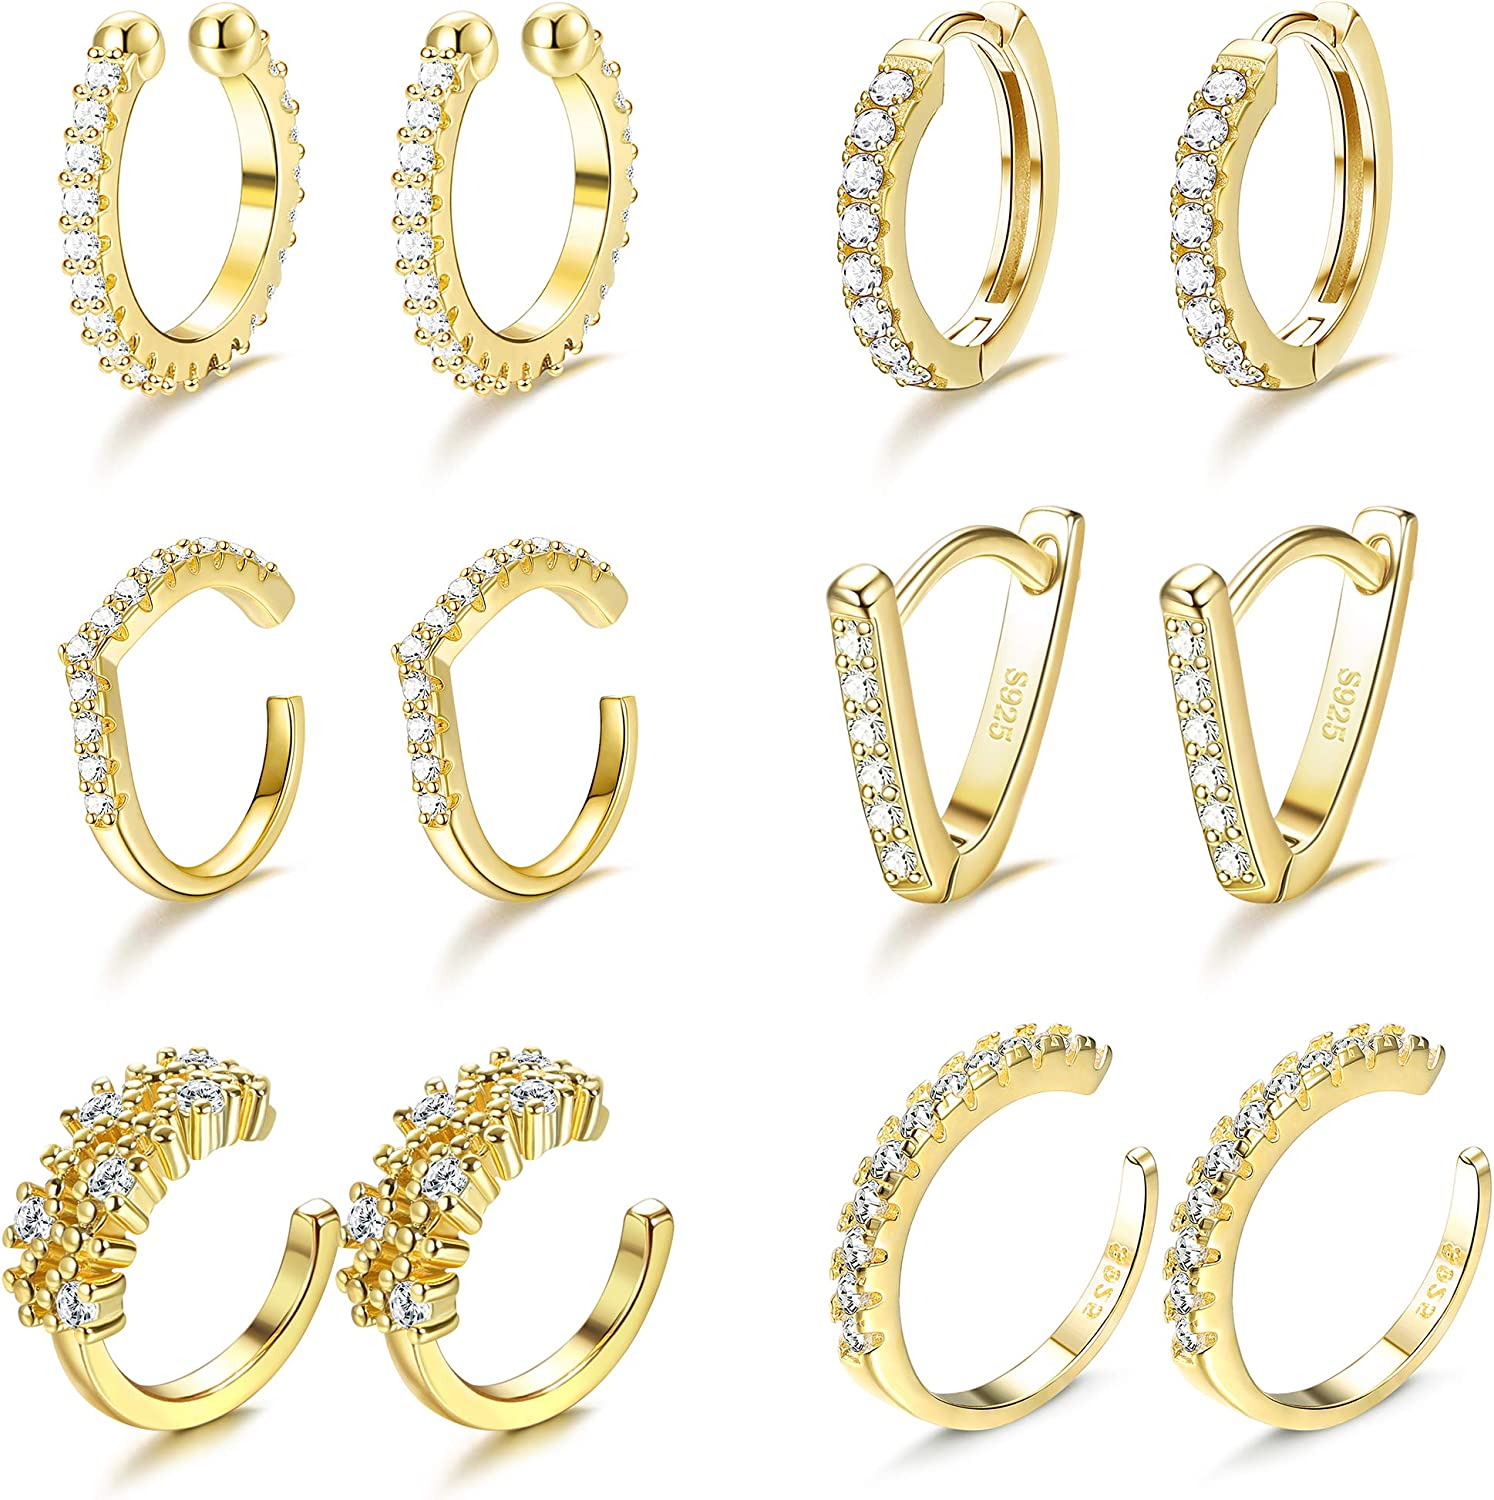 Lowest price challenge LOYALLOOK 14K Gold Cuff Earrings Small for Women Zirconia Cubic OFFicial store